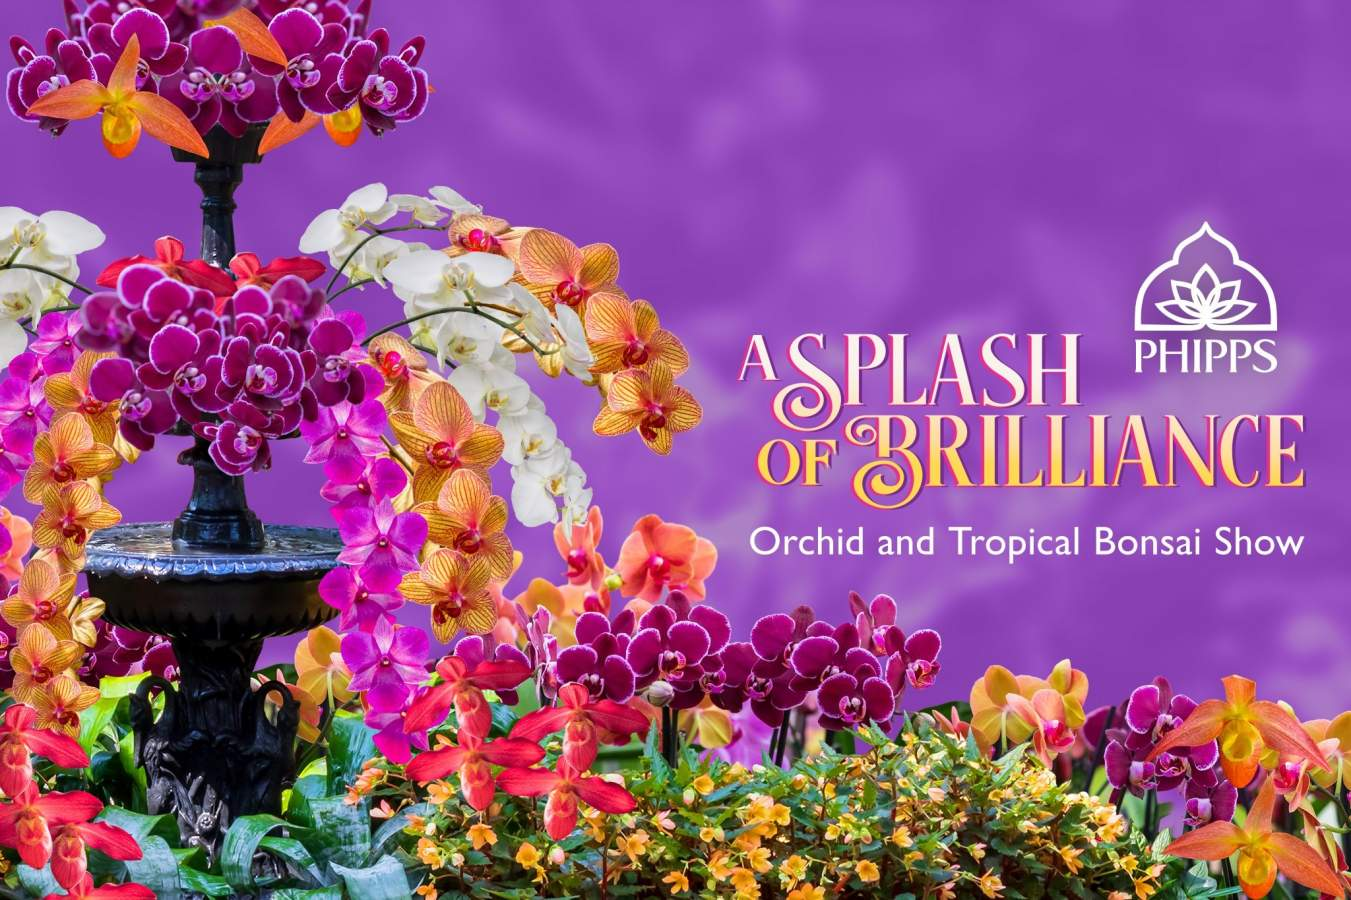 Orchid and Tropical Bonsai Show: A Splash of Brilliance